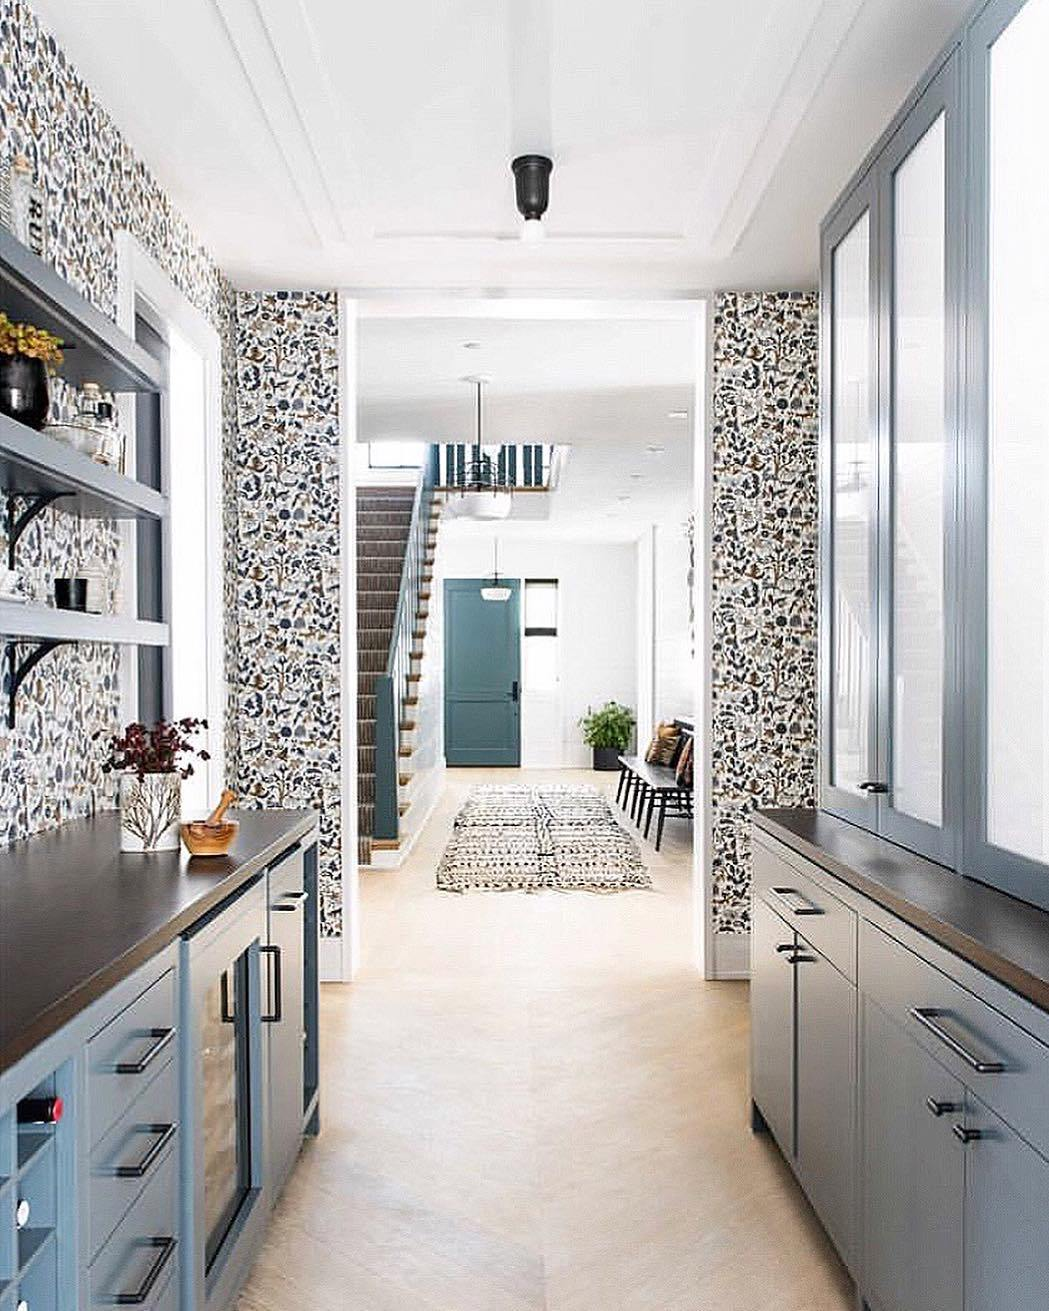 Our Favorite Patterns for the Kitchen | Foret Charcoal wallpaper | Julia Rothman | Hygge & West